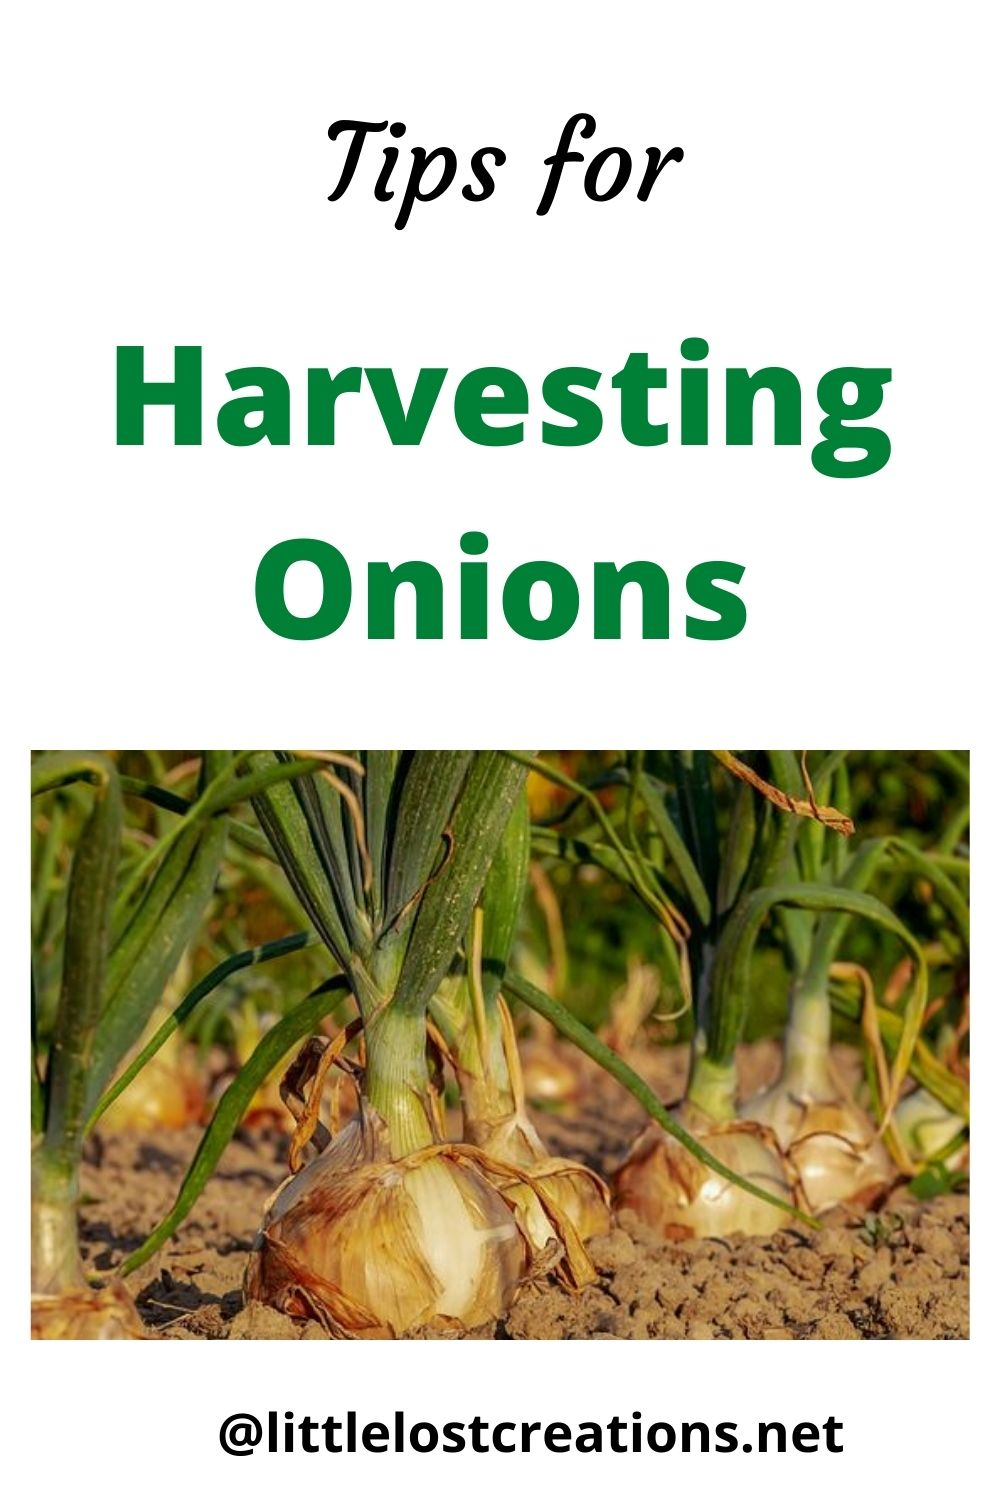 Tips for harvesting onions on the homestead. Onions growing in the garden